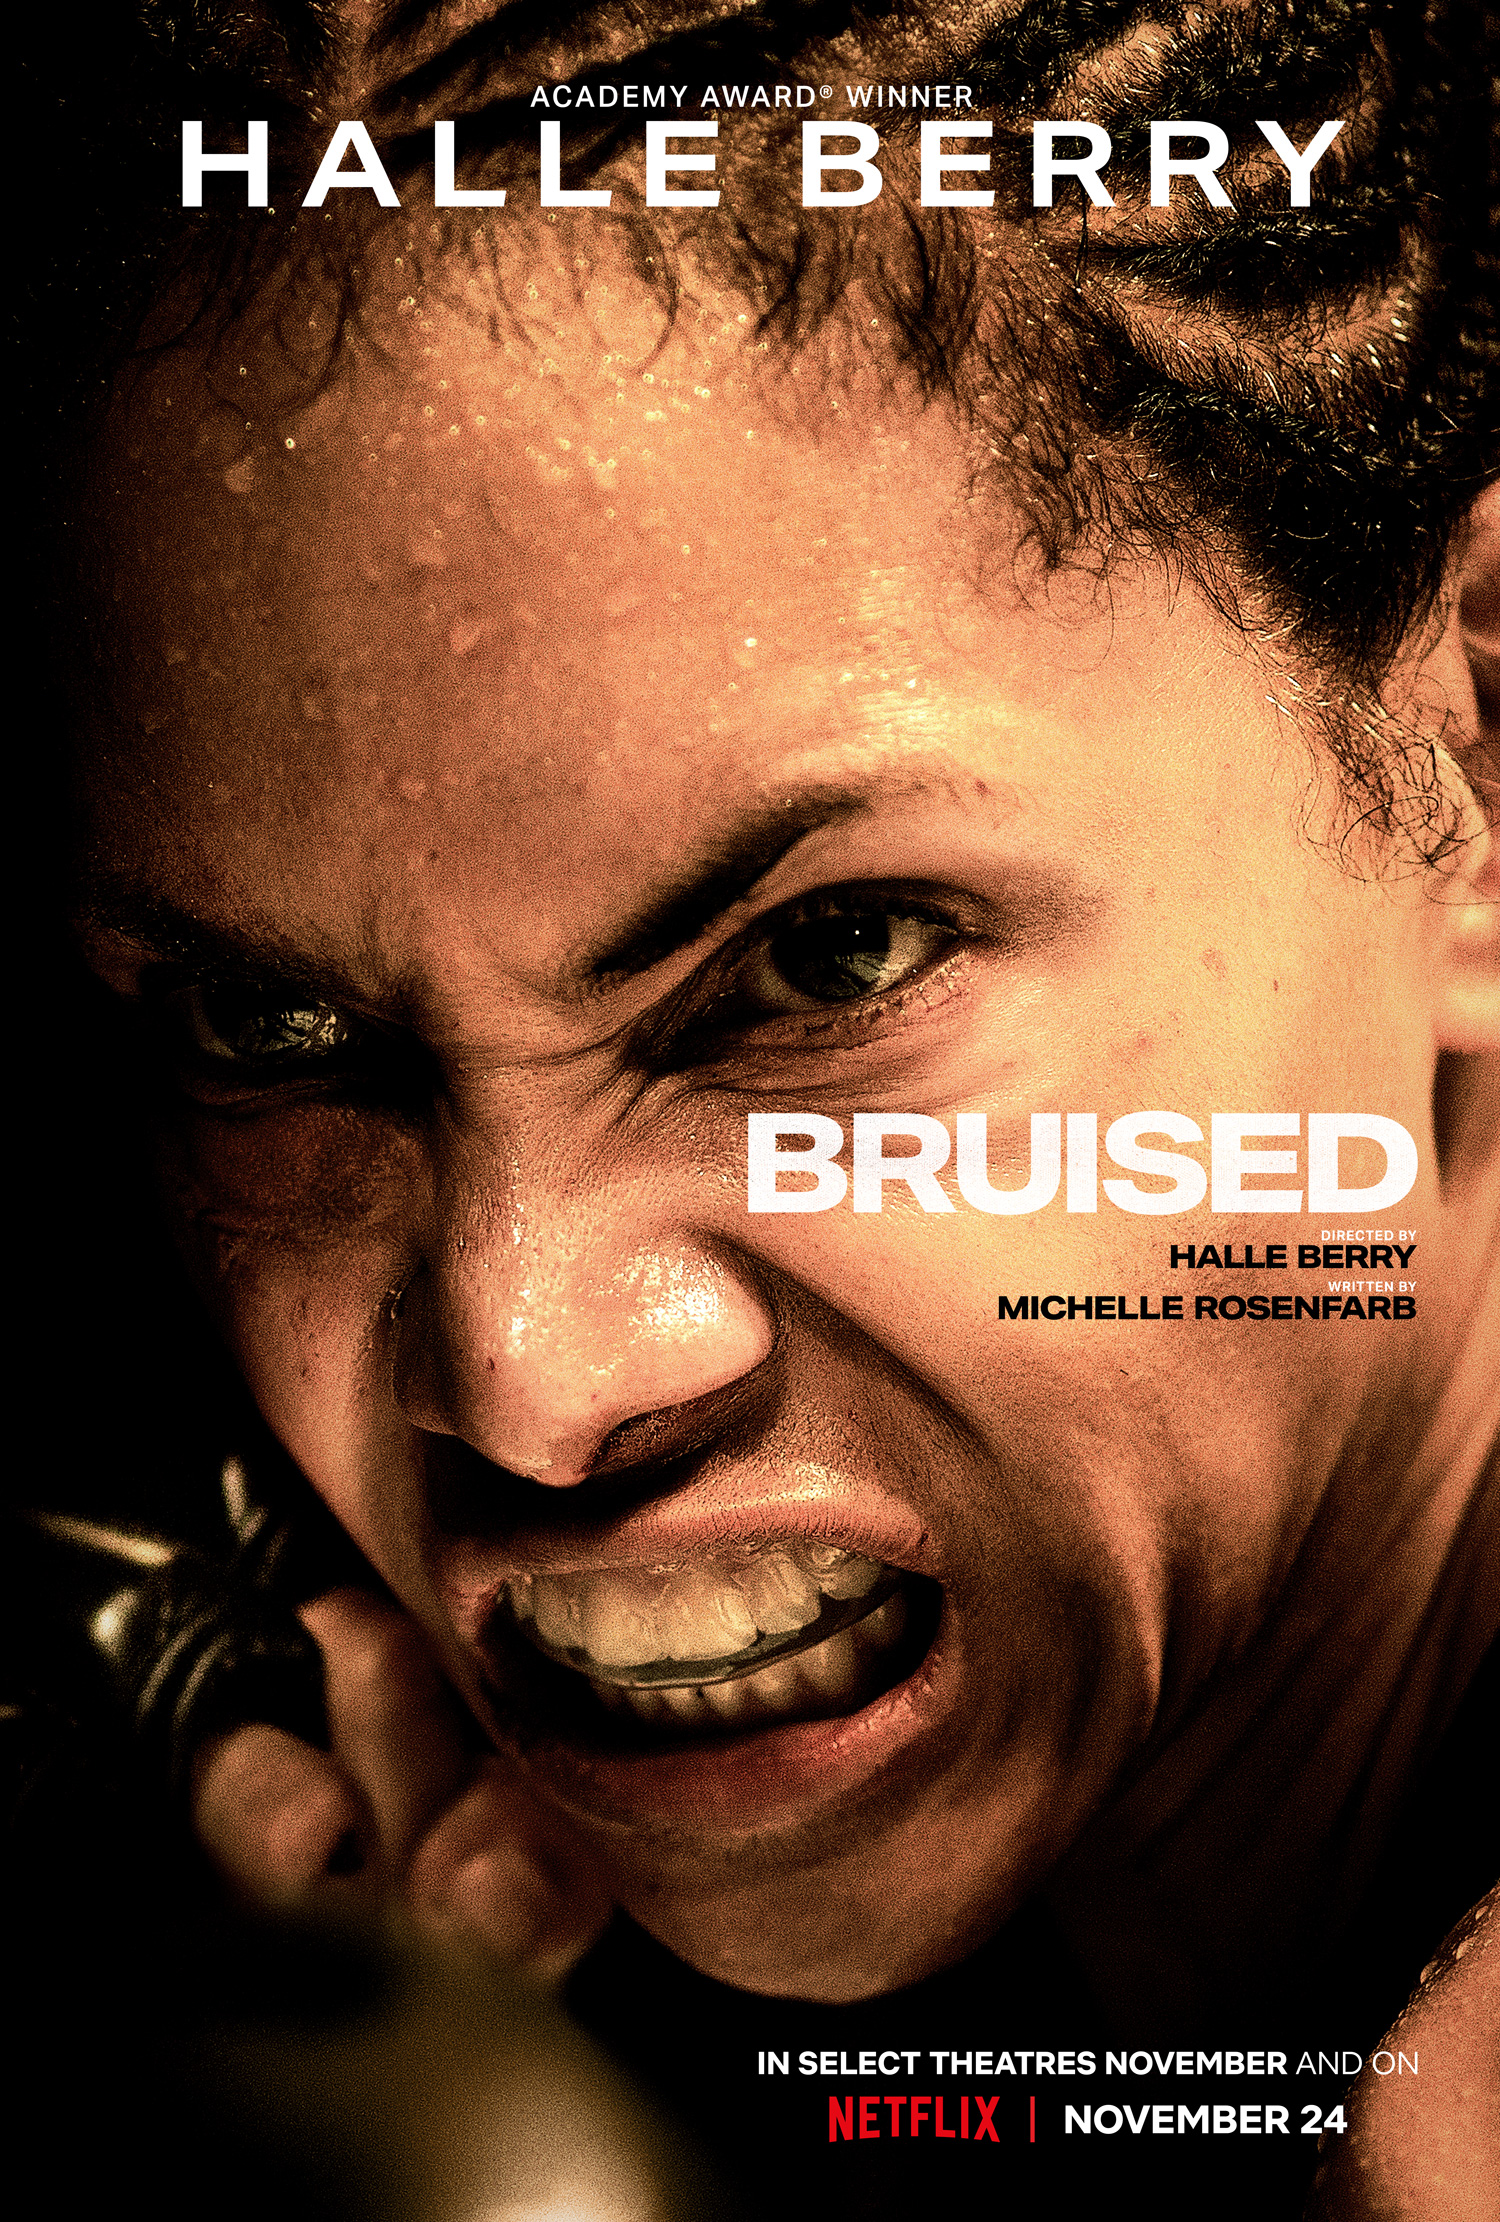 Halle Berry 'Bruised' key artwork and premiere dates